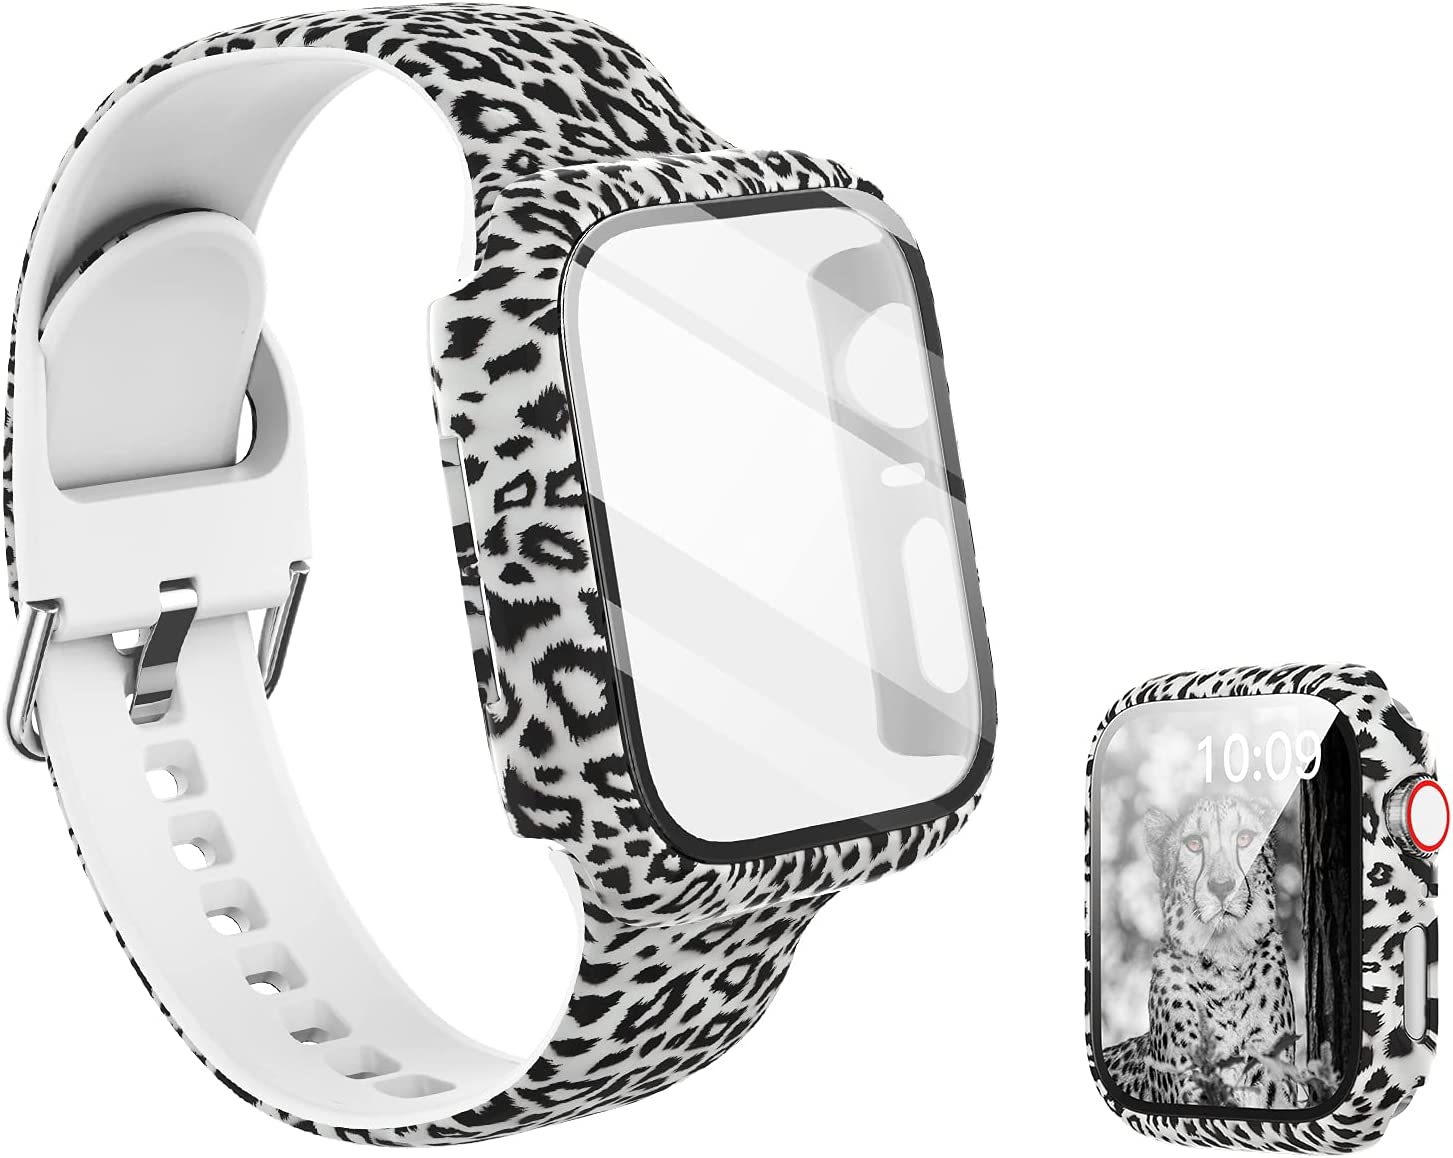 Compatible with Leopard Apple Watch Band 44mm with Screen Protector Case, Women Girl Pattern Printed Glass Screen Protector and Silicon Wristband Strap for iwatch Series 6 5 4 Se Accessories